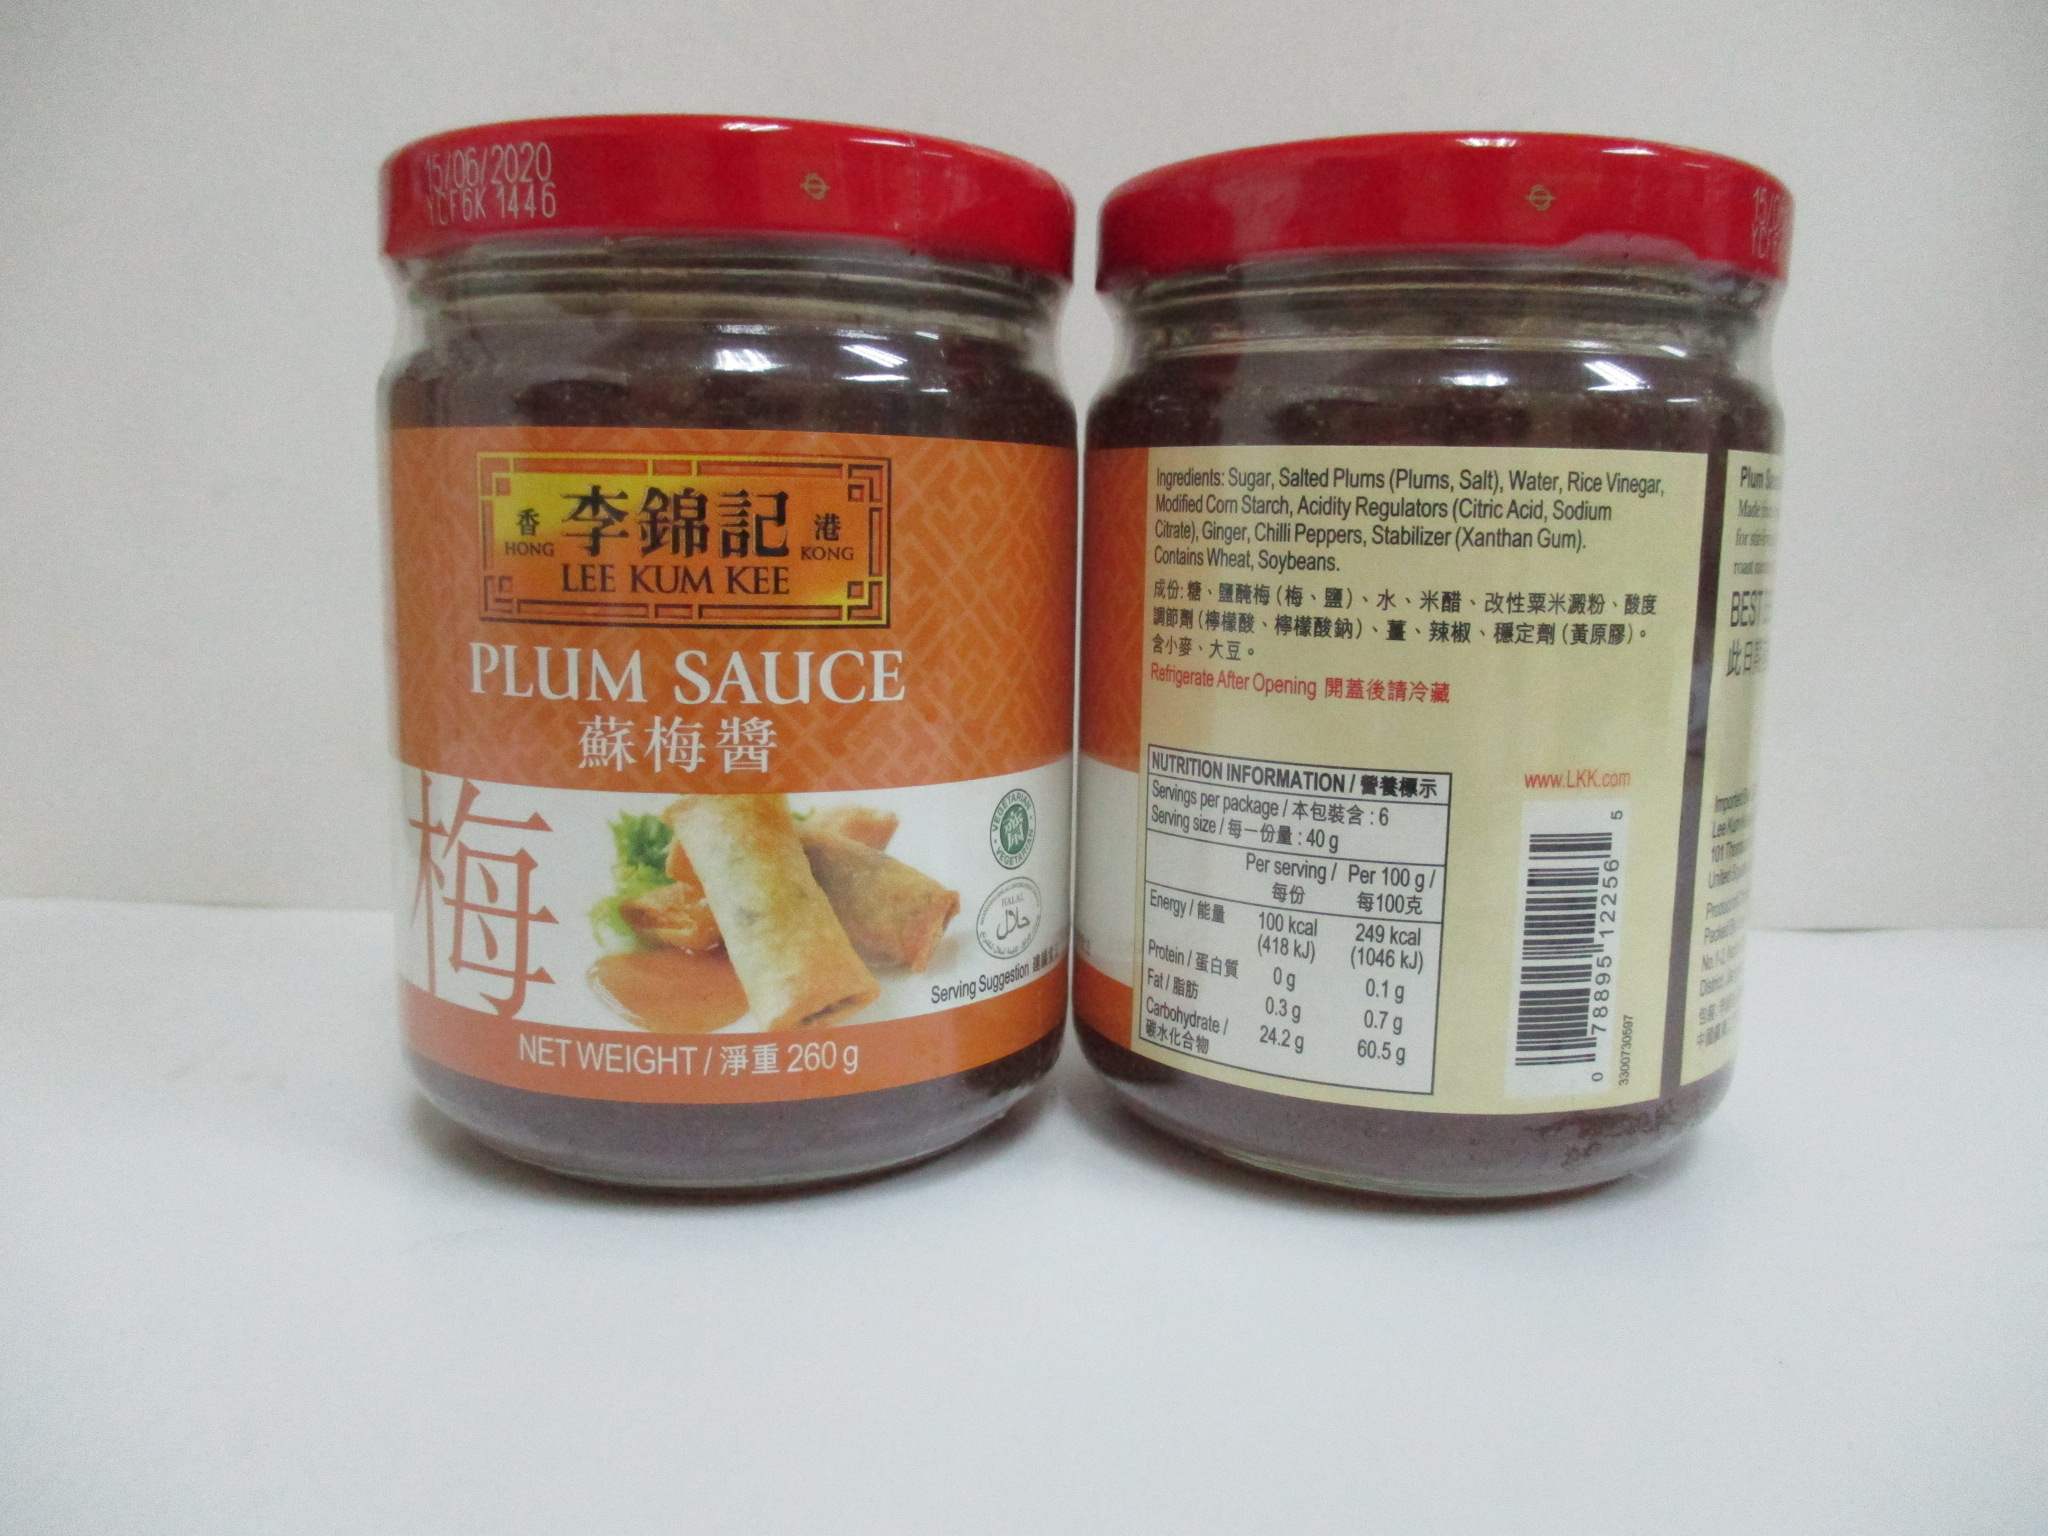 LKK Plum Sauce  12 x 260g NEW